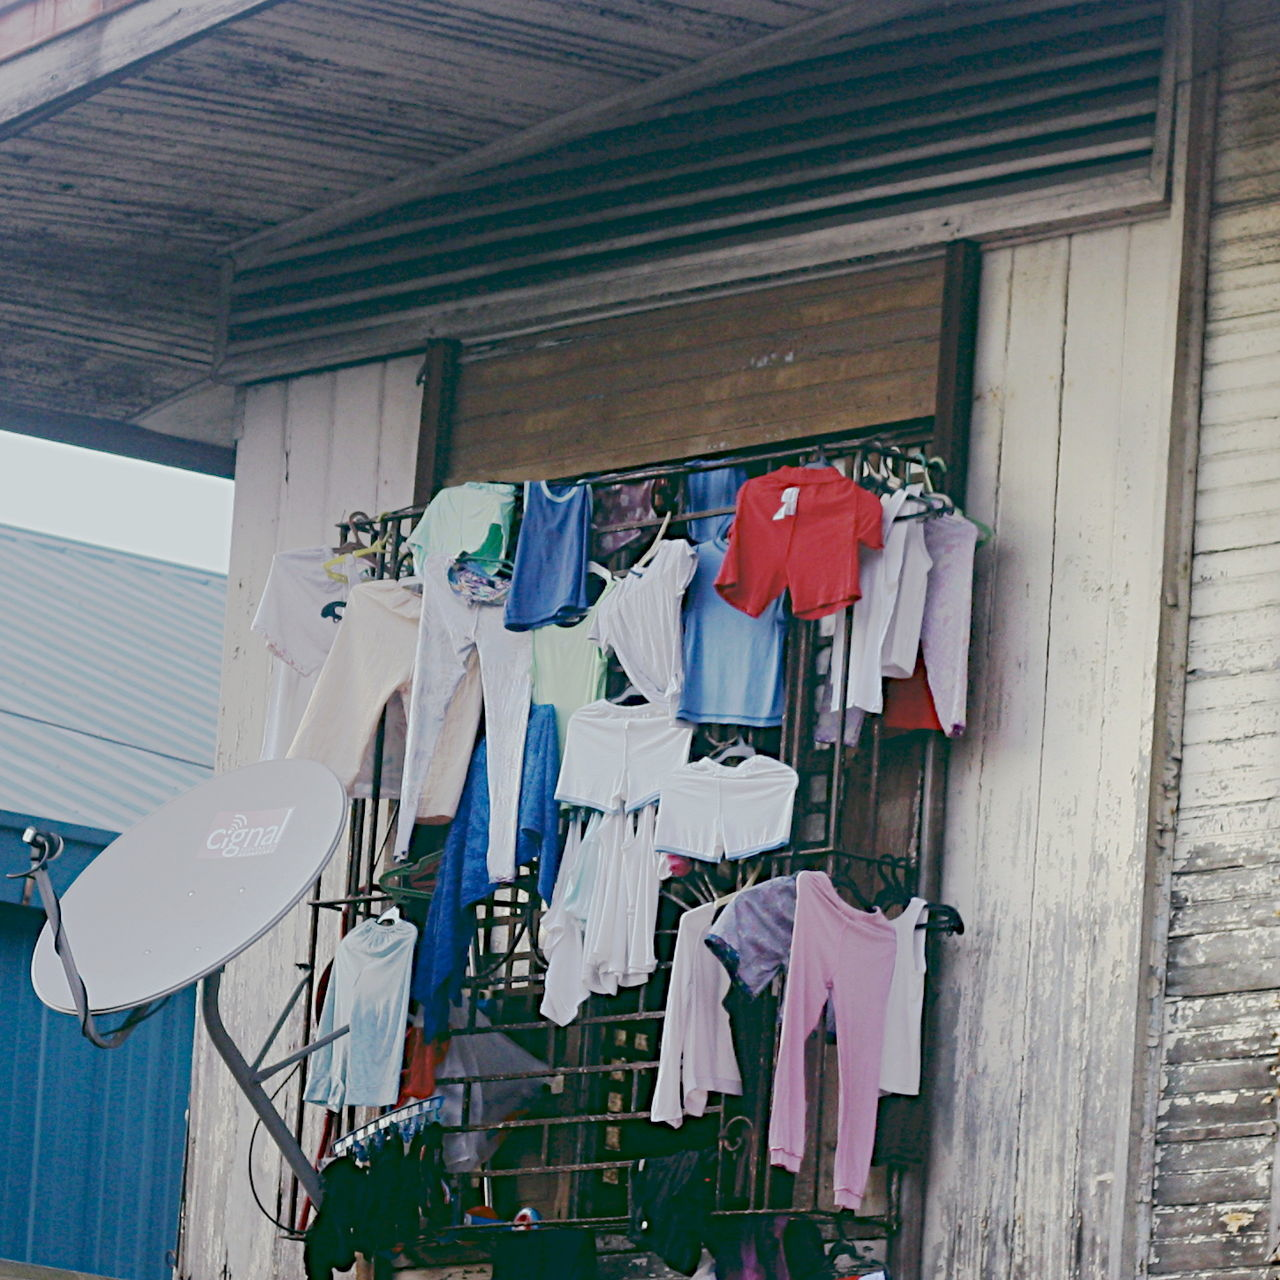 Building Exterior Cloth Clothesline Clothing Drying Hanging House Exterior Laundry Low Angle View Multi Colored No People Outdoors Pattern The Great Outdoors - 2017 EyeEm Awards